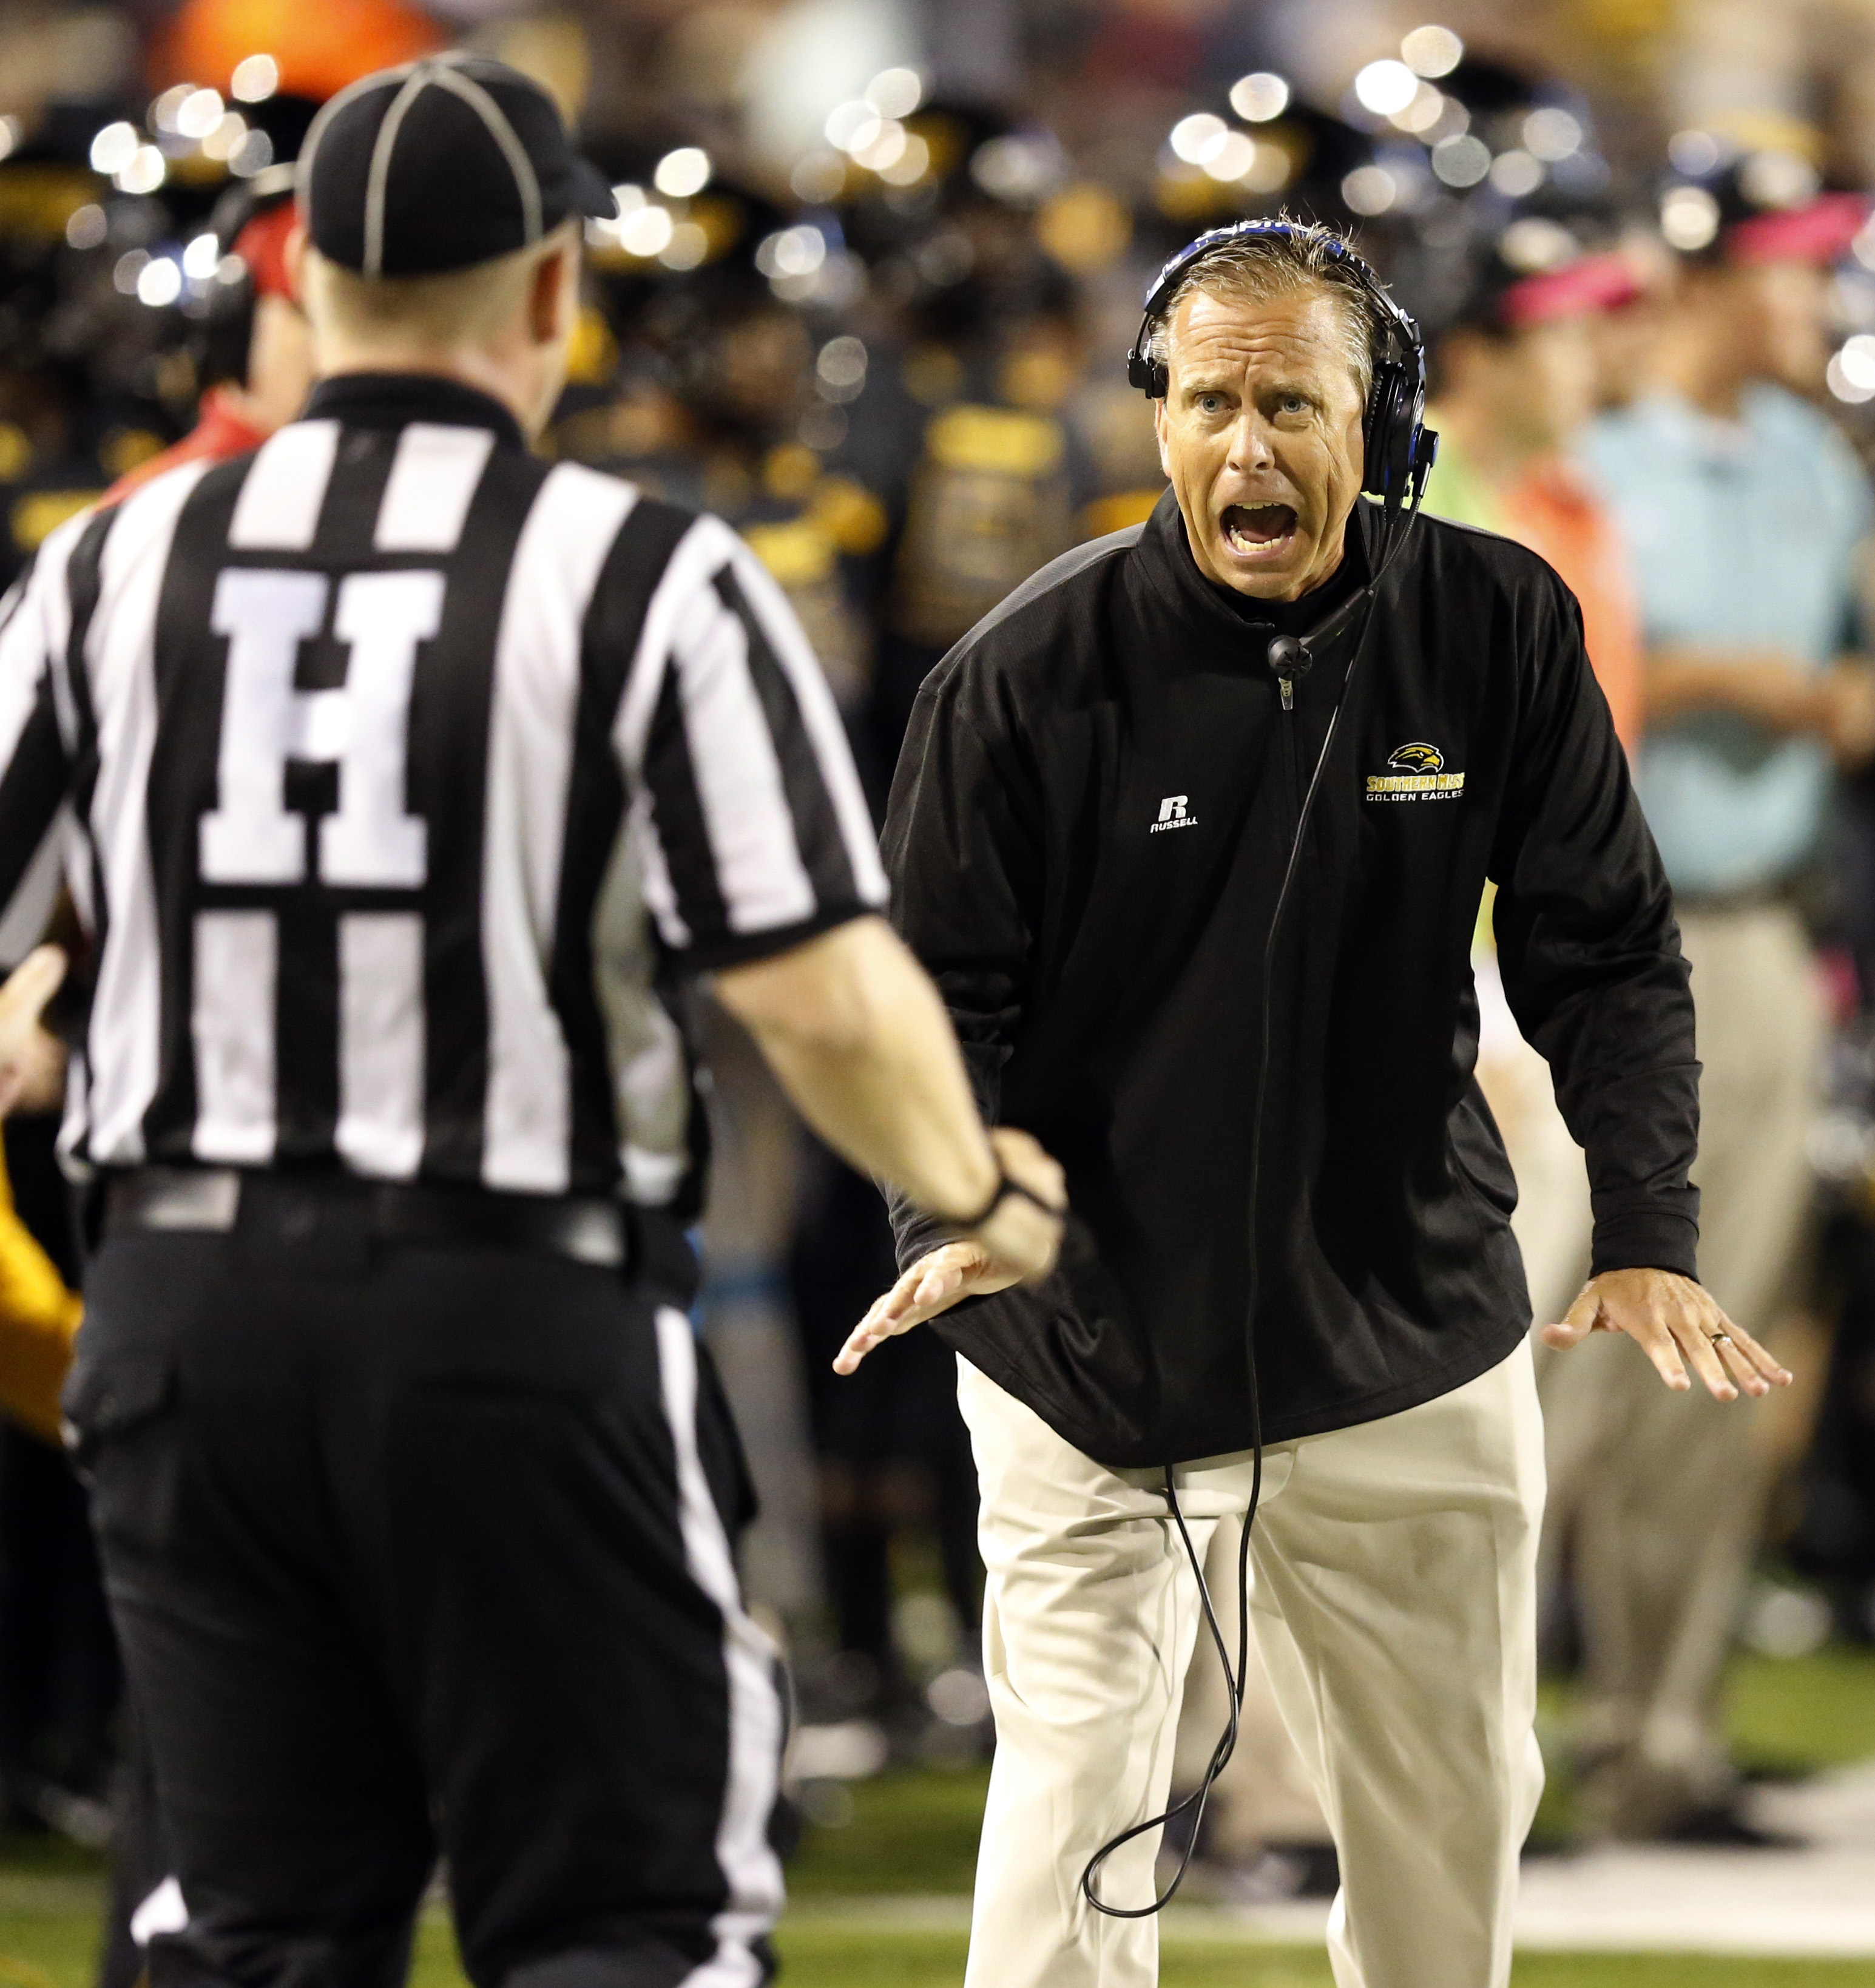 FILE - In this Saturday, Oct. 3, 2015, file photo, Southern Mississippi football coach Todd Monken complains about a call to an official in the second half of an NCAA college football game against North Texas in Hattiesburg, Miss. Southern Mississippi has